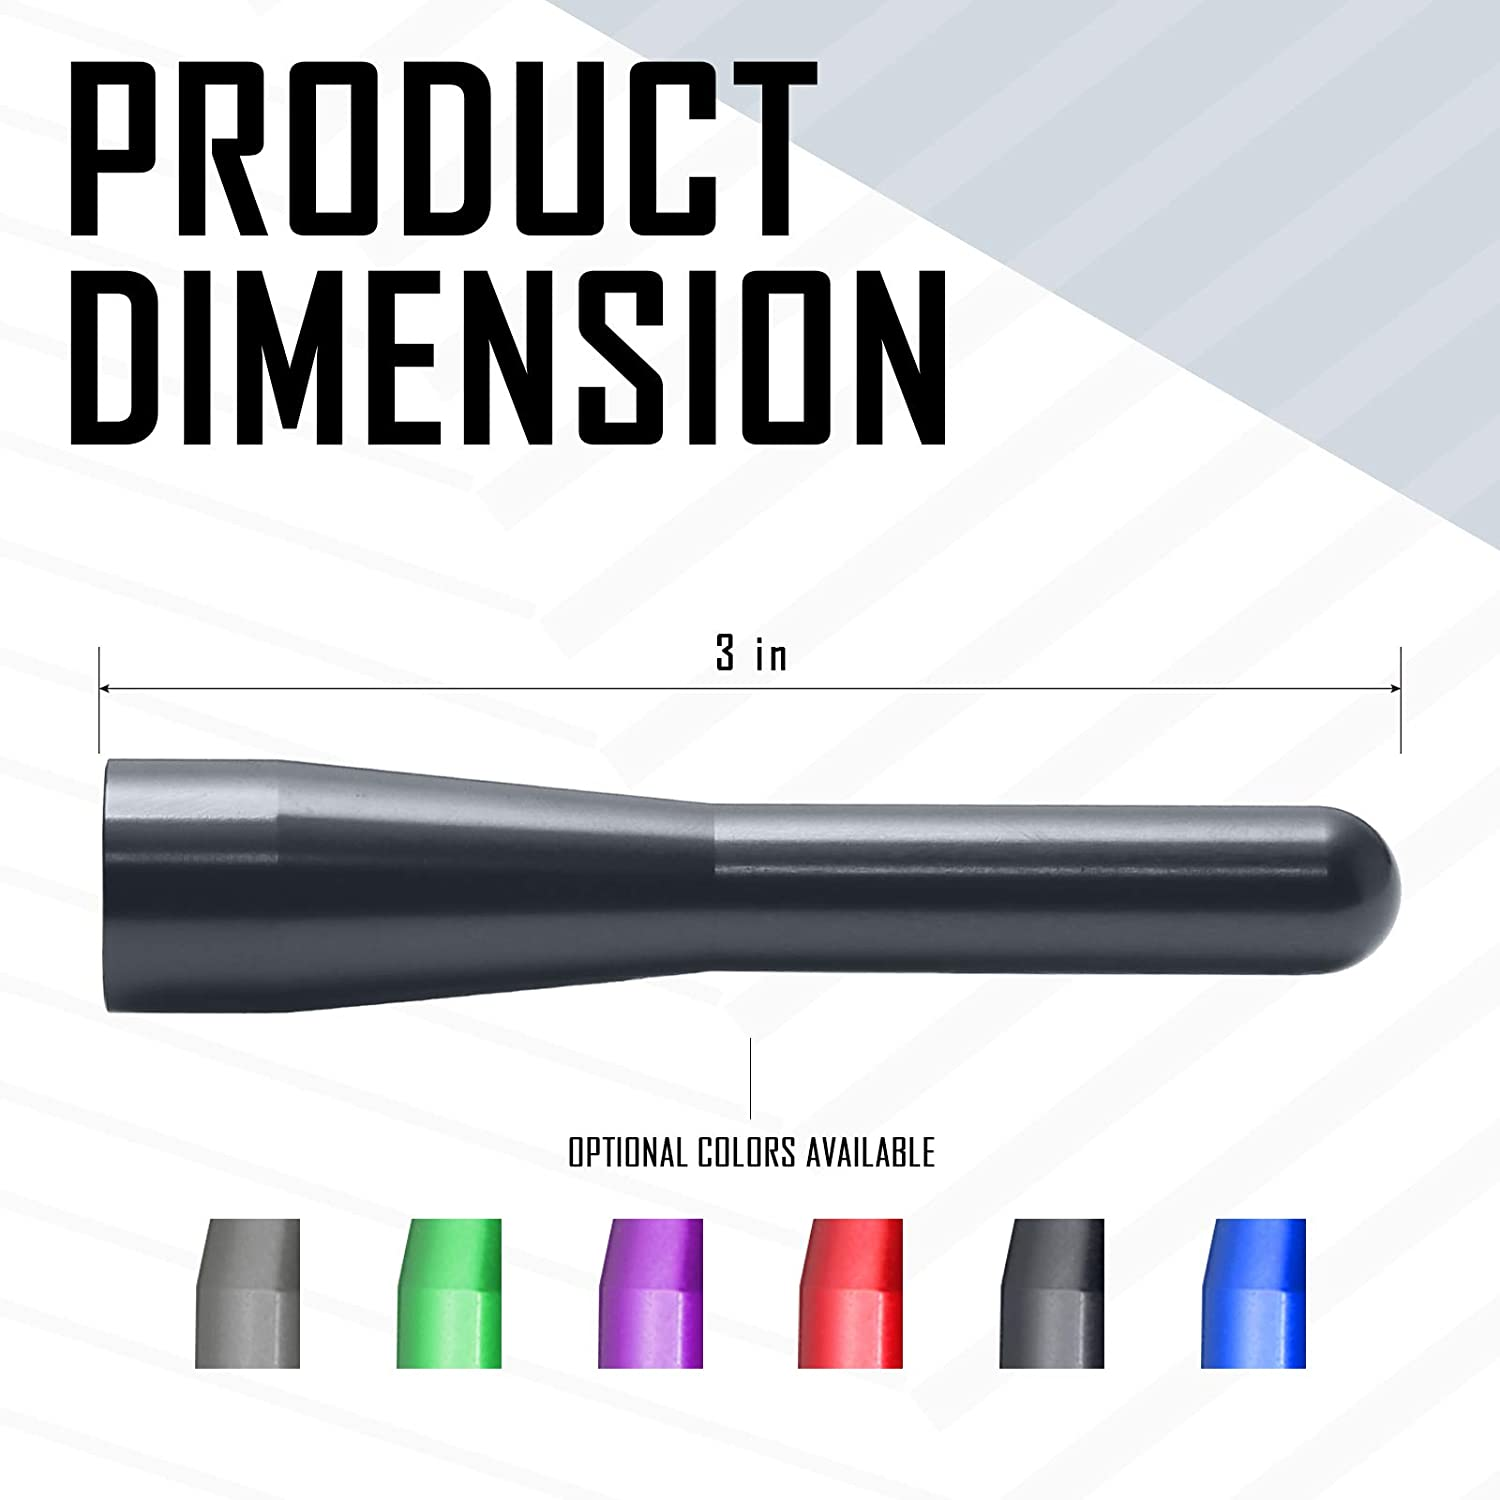 Optimized AM//FM Reception with Tough Material Elitezip Replacement Antenna for Toyota Tundra 1999-2018 3 Inches Carbon/Black